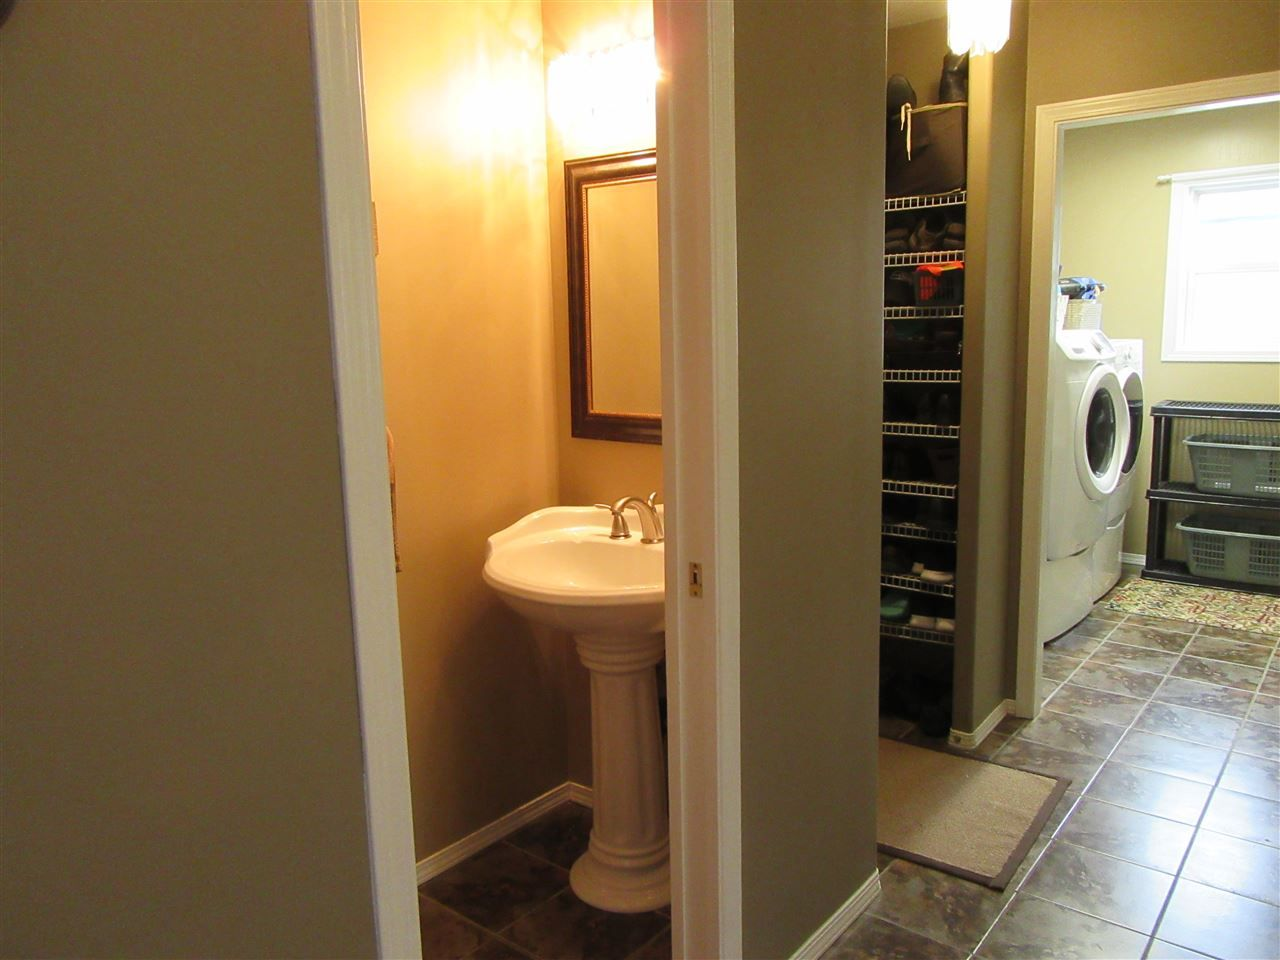 """Photo 19: Photos: 4305 FOSTER Road in Prince George: Charella/Starlane House for sale in """"CHARELLA/STARLANE"""" (PG City South (Zone 74))  : MLS®# R2499513"""